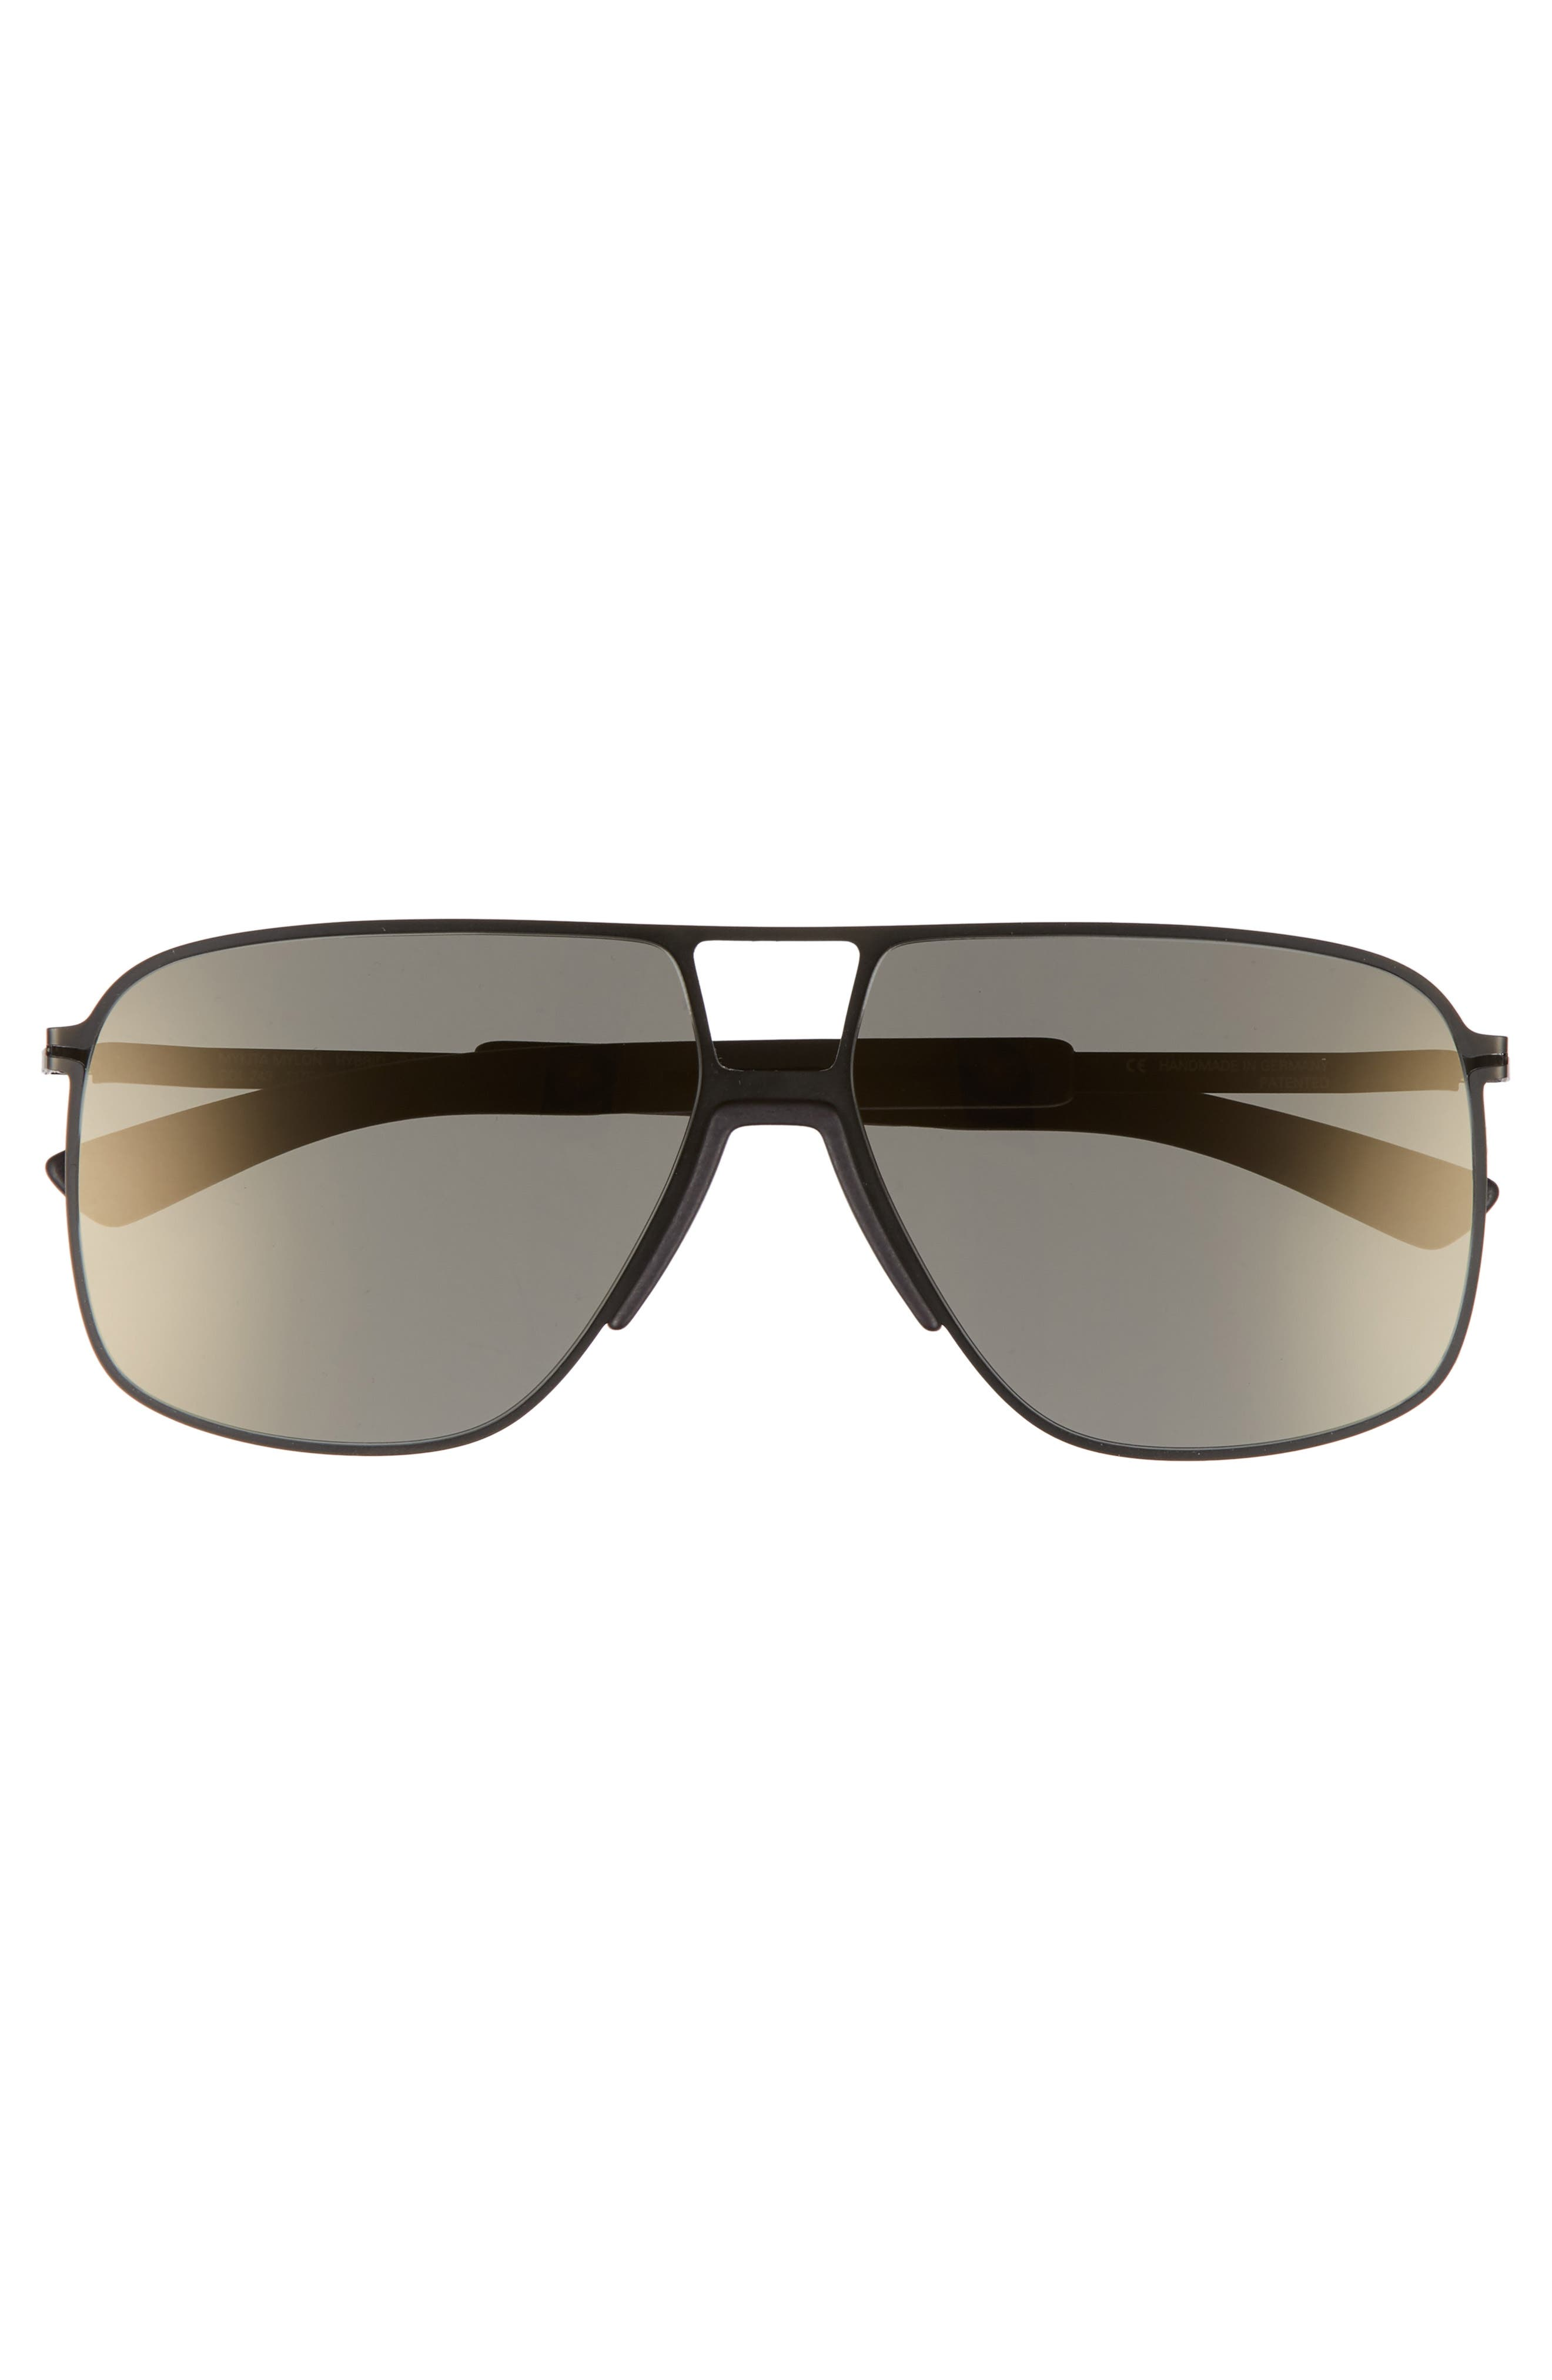 Oak 61mm Aviator Sunglasses,                             Alternate thumbnail 2, color,                             Black/ Pitch Black